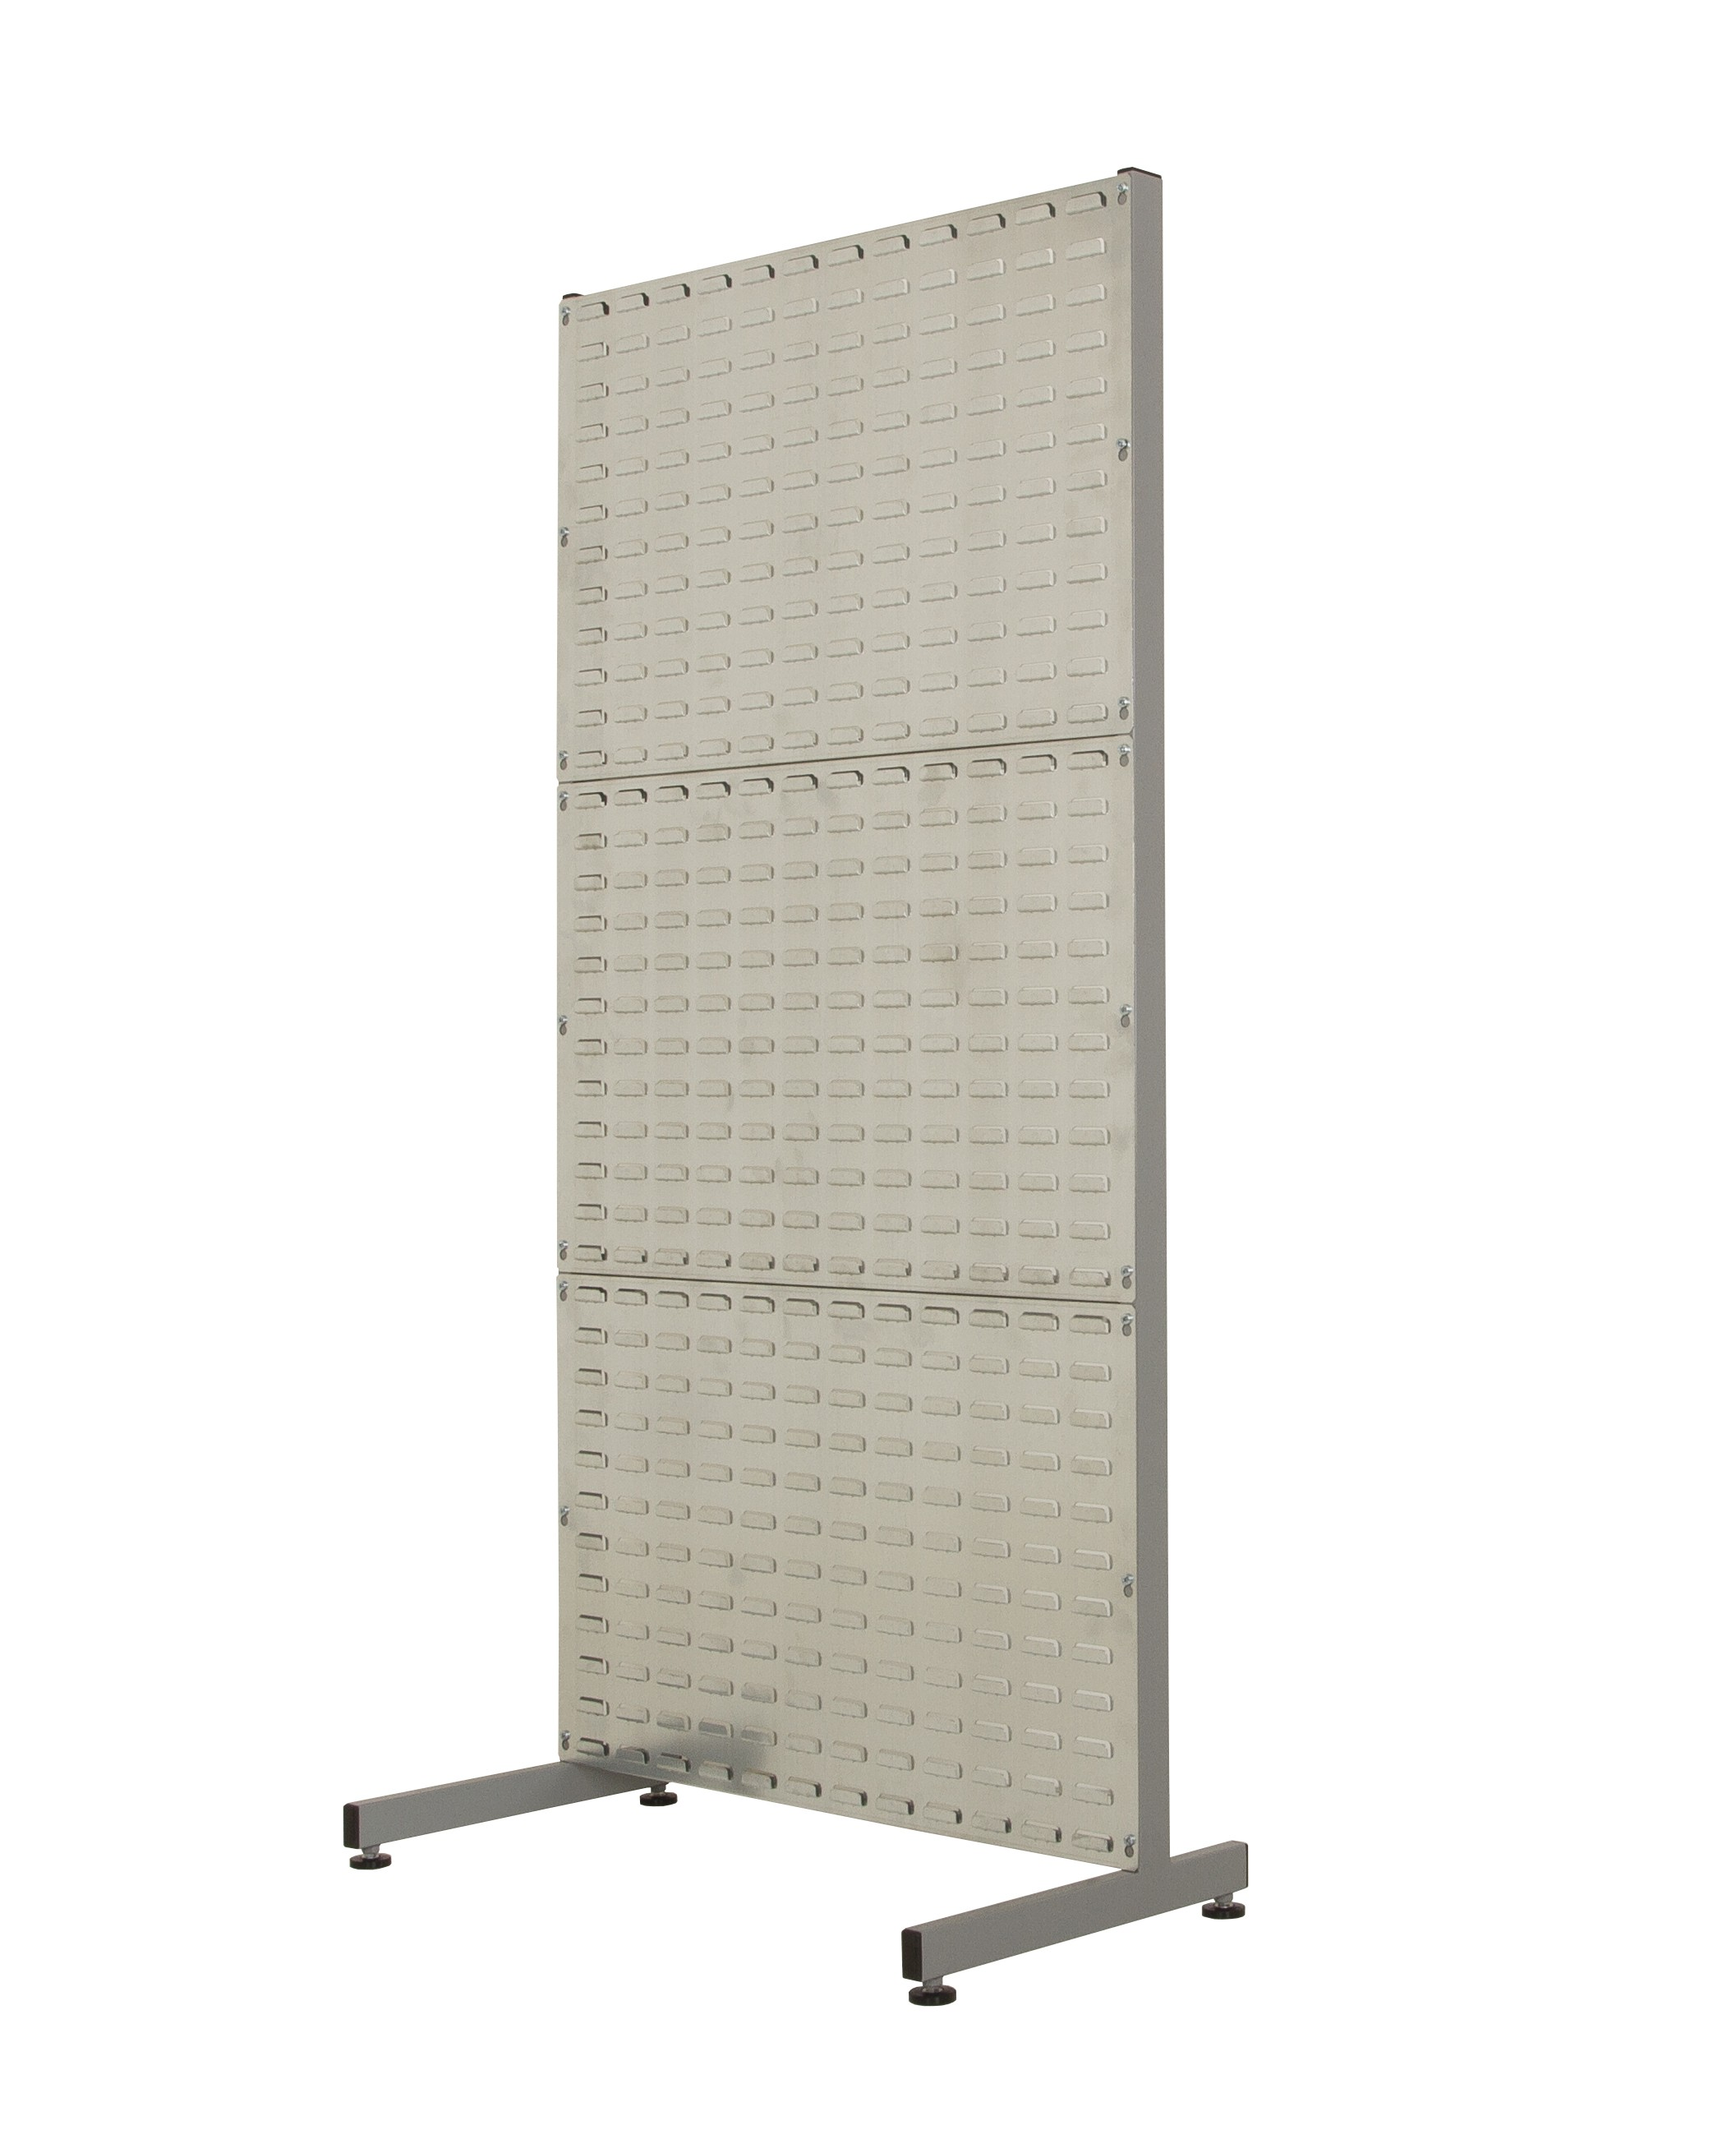 Louvre Racks - Double Sided